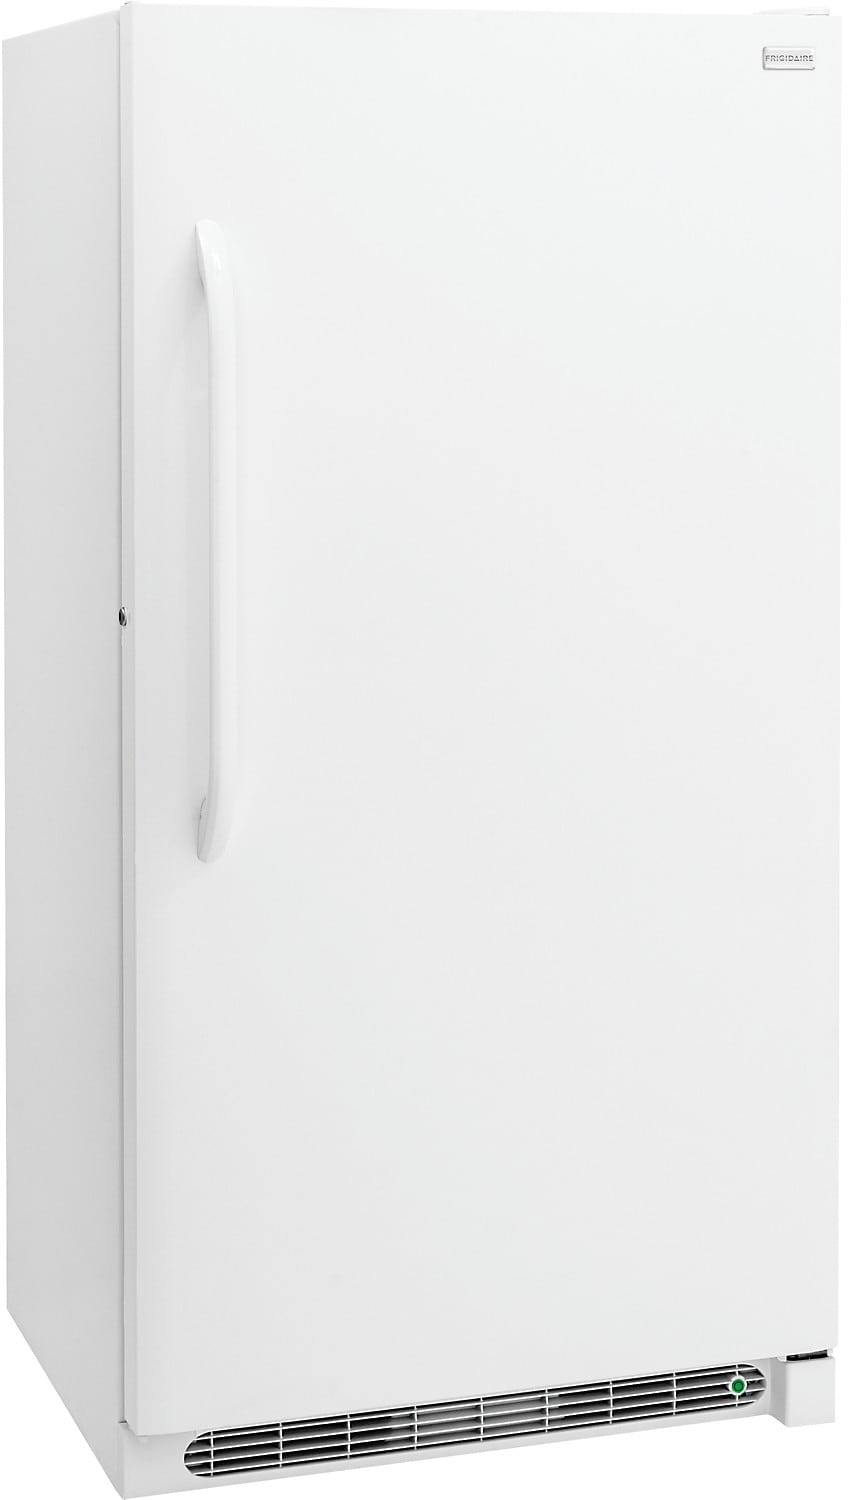 Frigidaire 17.4 Cu. Ft. Upright Freezer - White